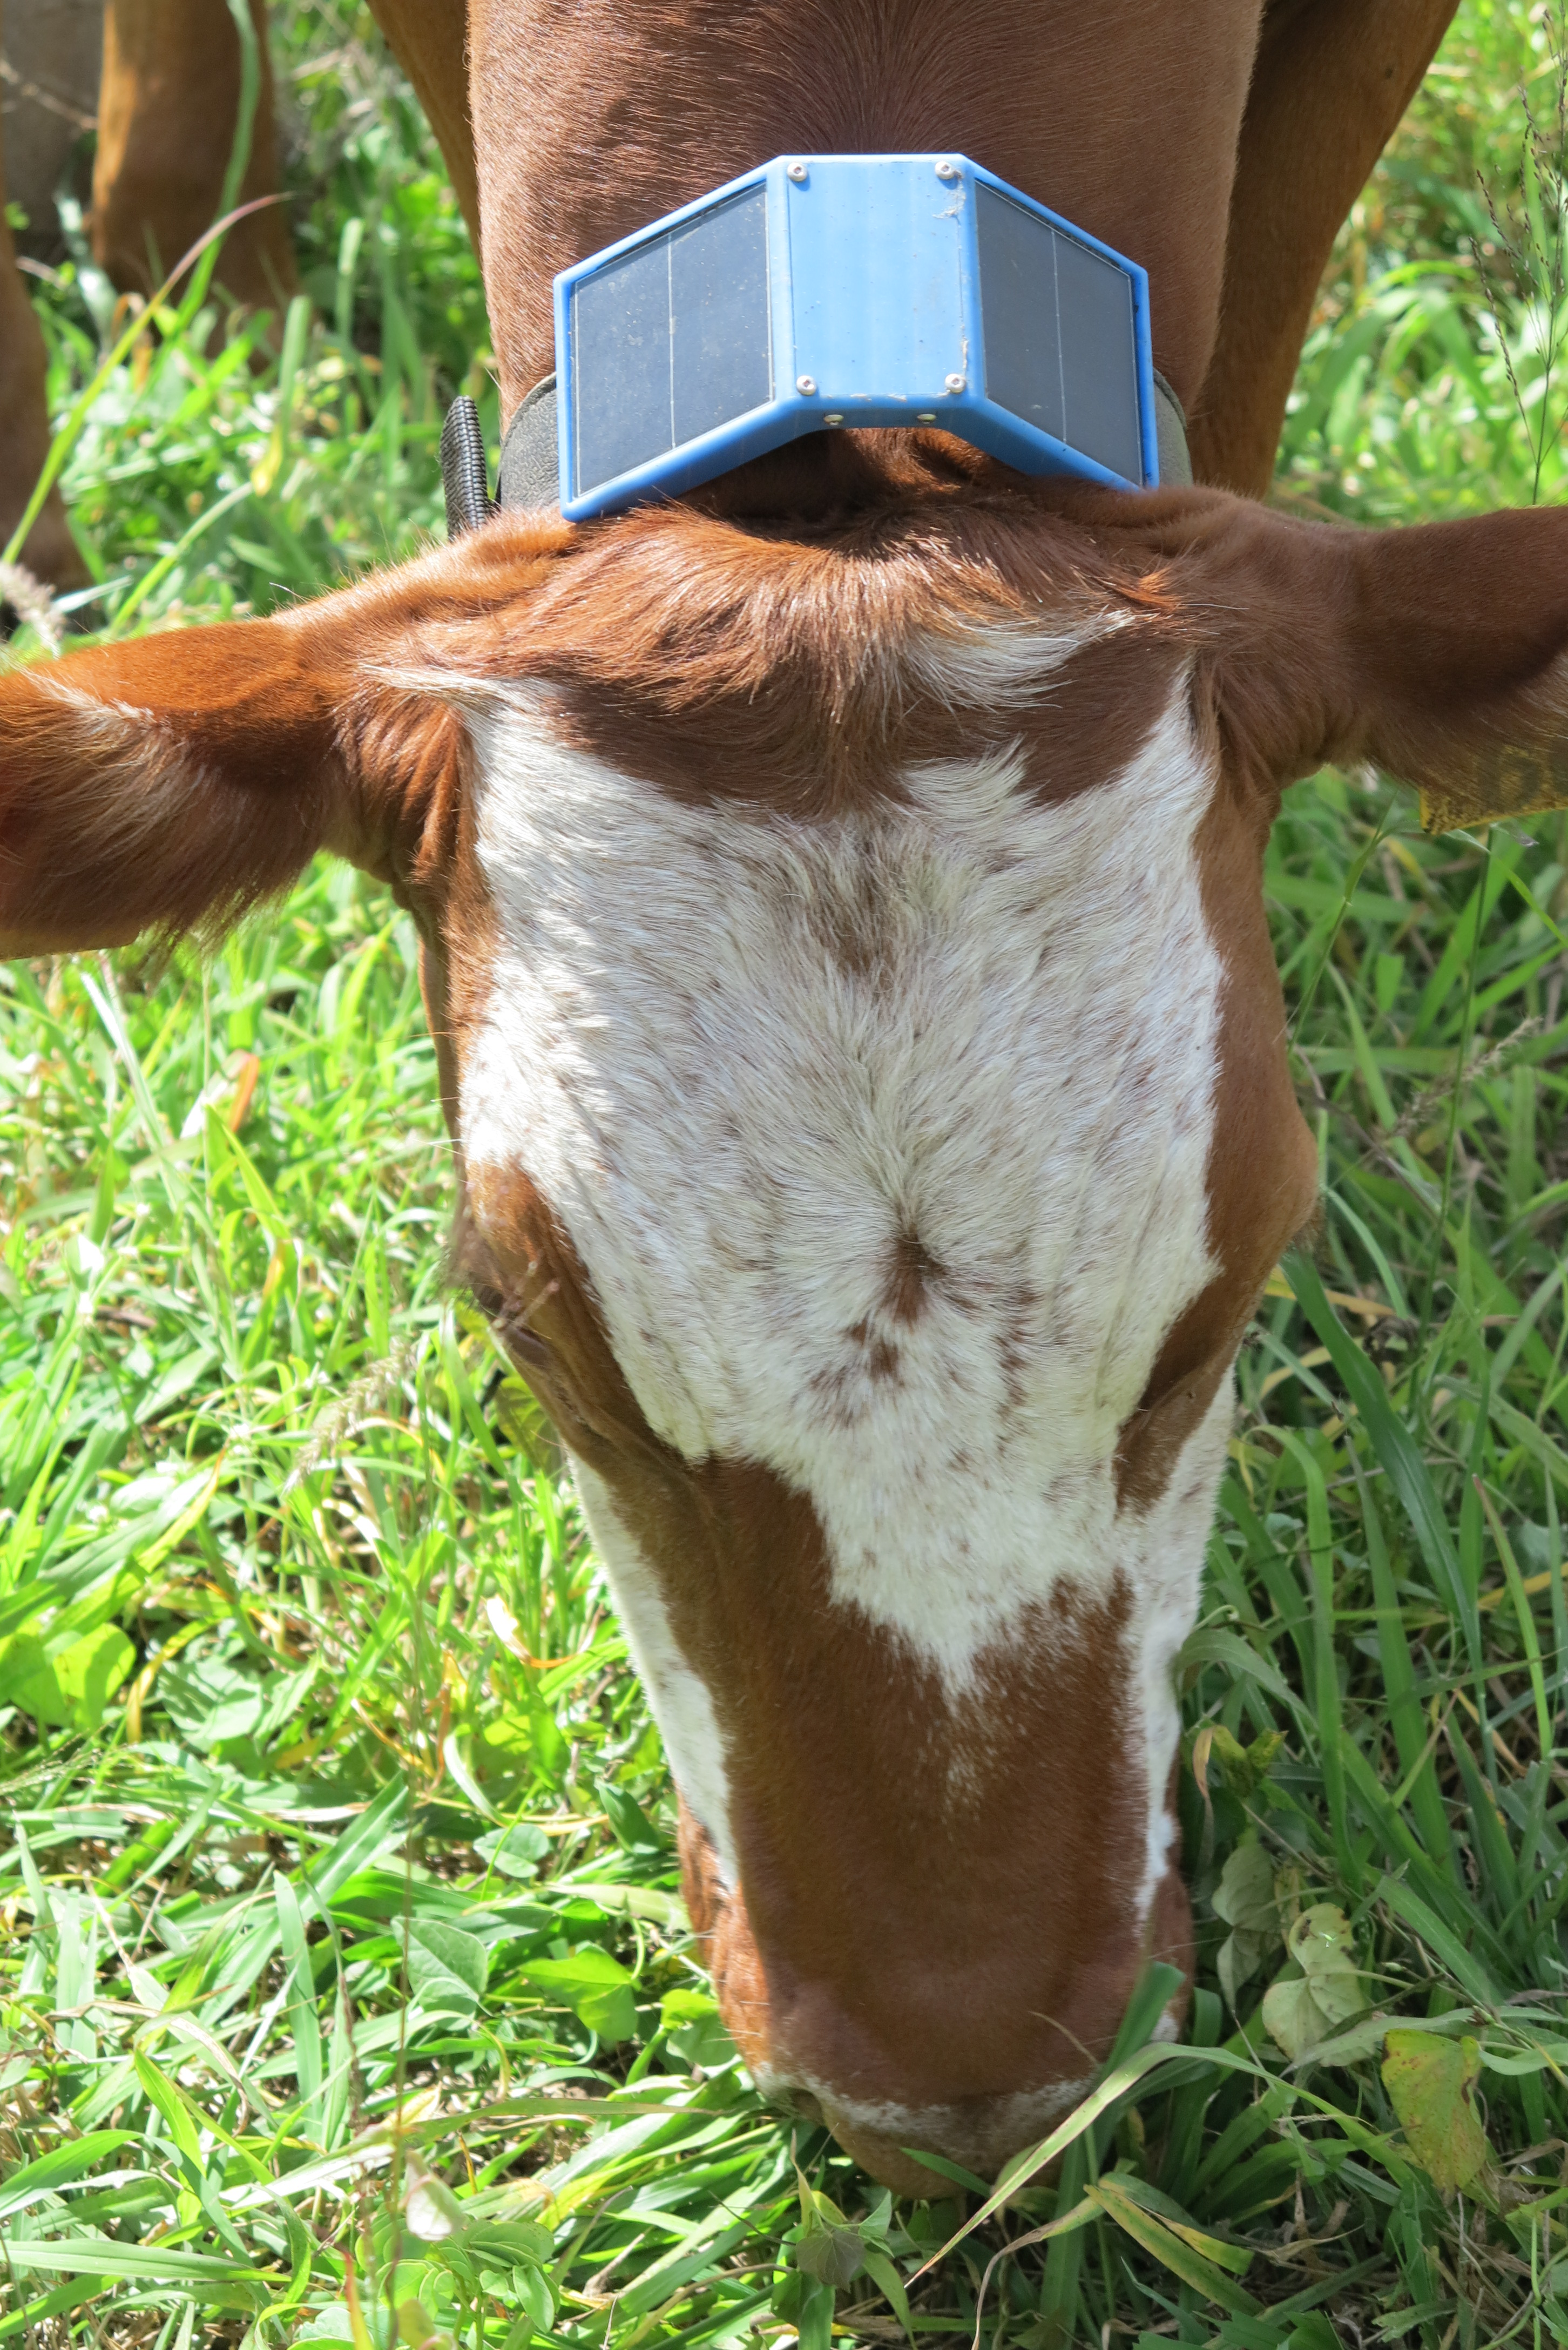 The head of a grazing cow with a small solar-panel on a collar around the cow's neck